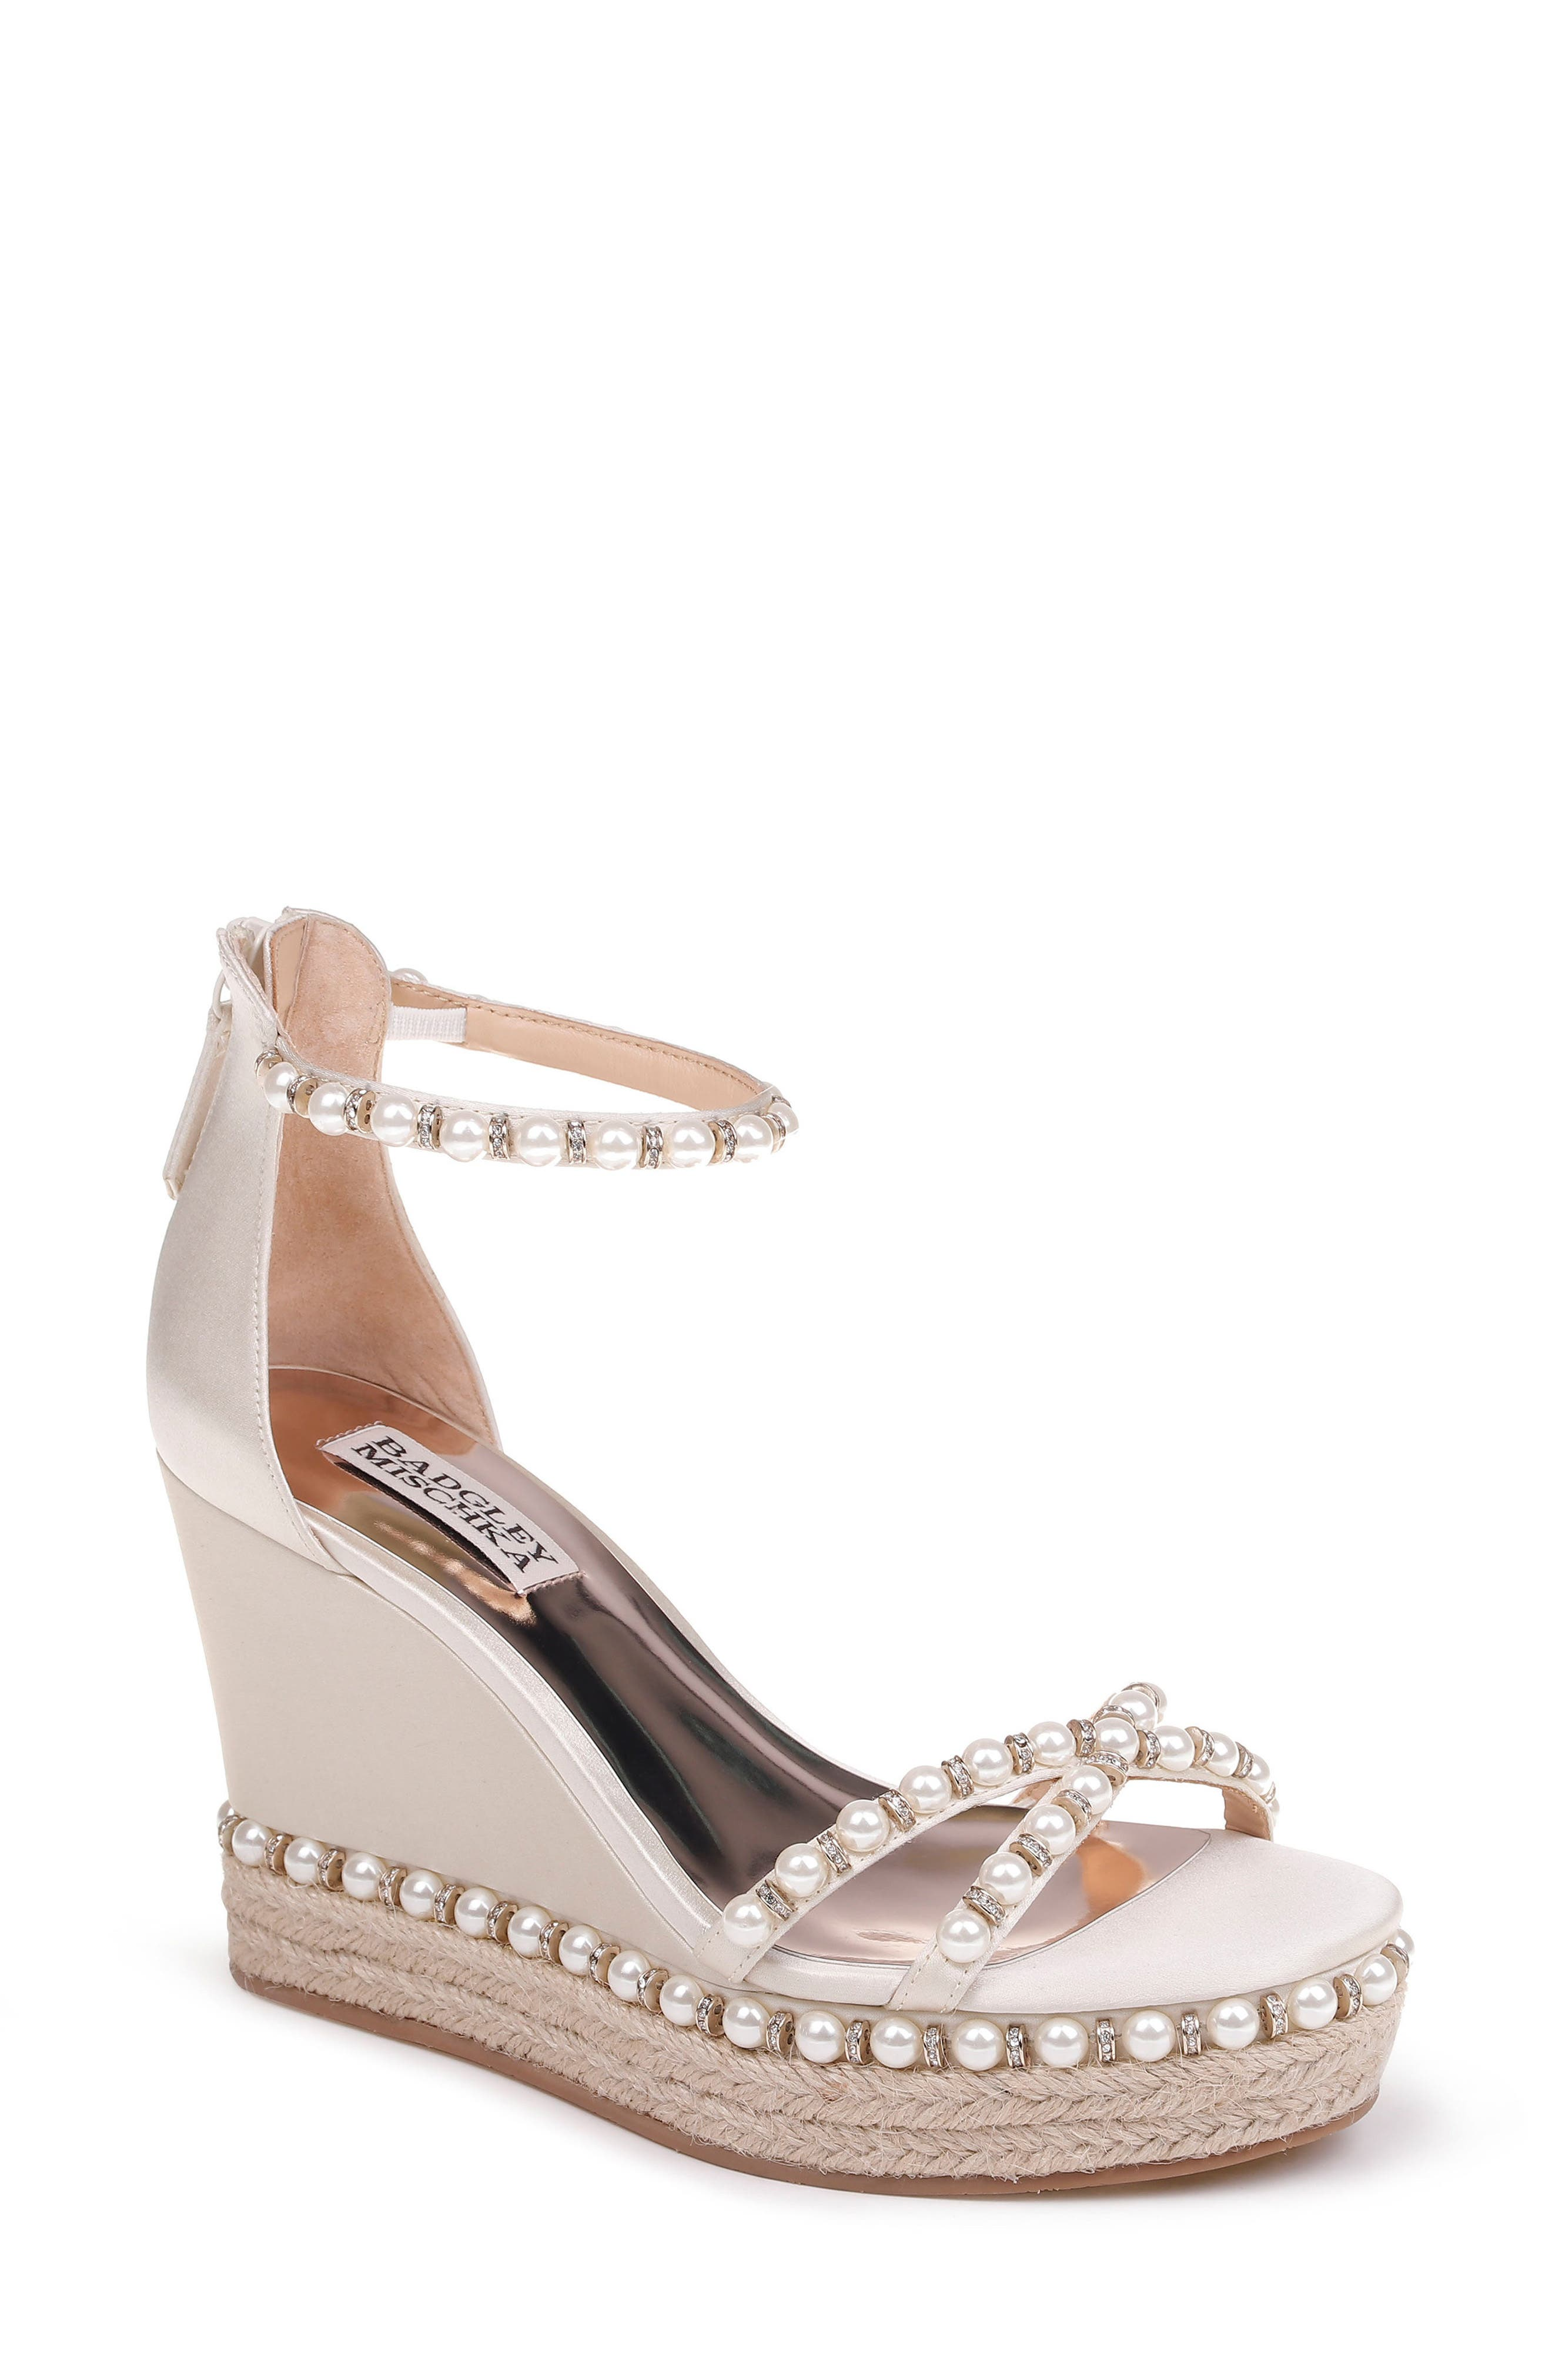 extremely sale online explore cheap price Badgley Mischka Metallic Wrap-Around Wedges wiki sale online cheap purchase new styles for sale ri1VDvI6o